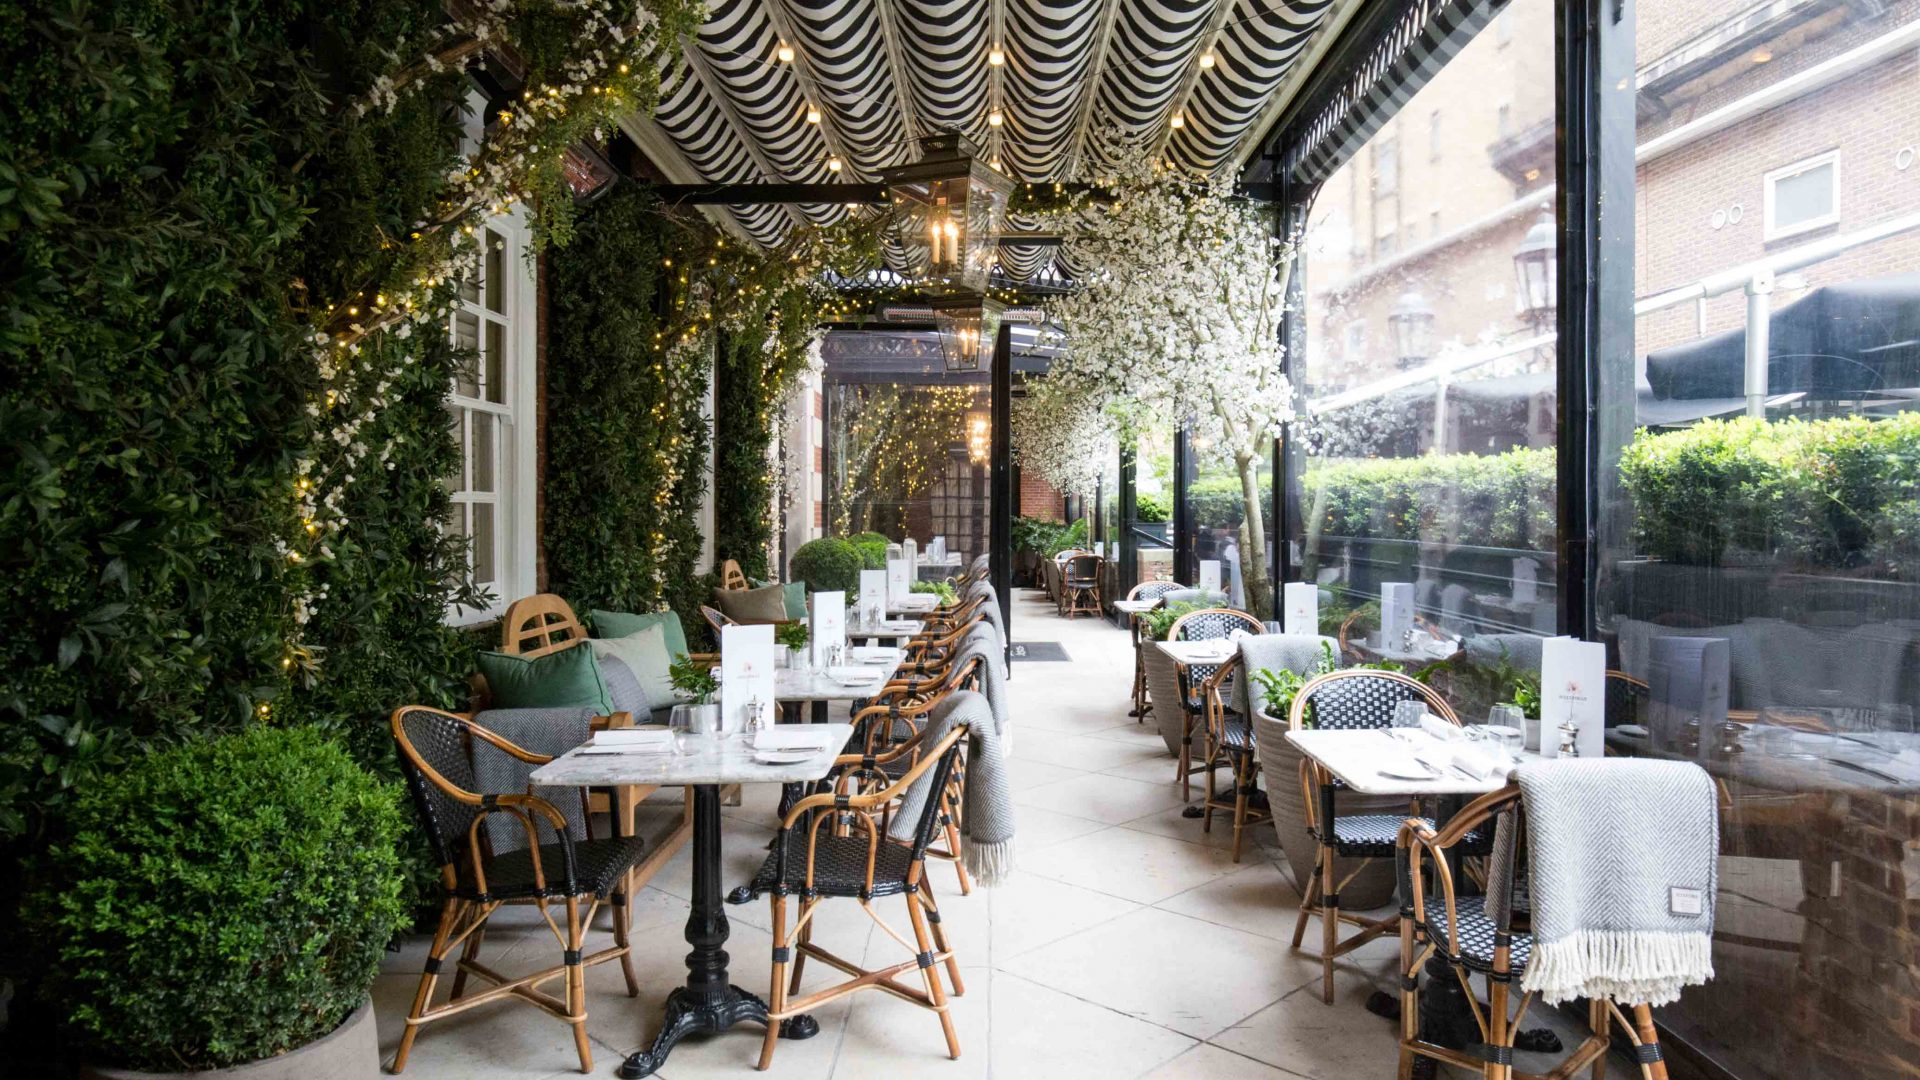 Terrace Garden Restaurant London